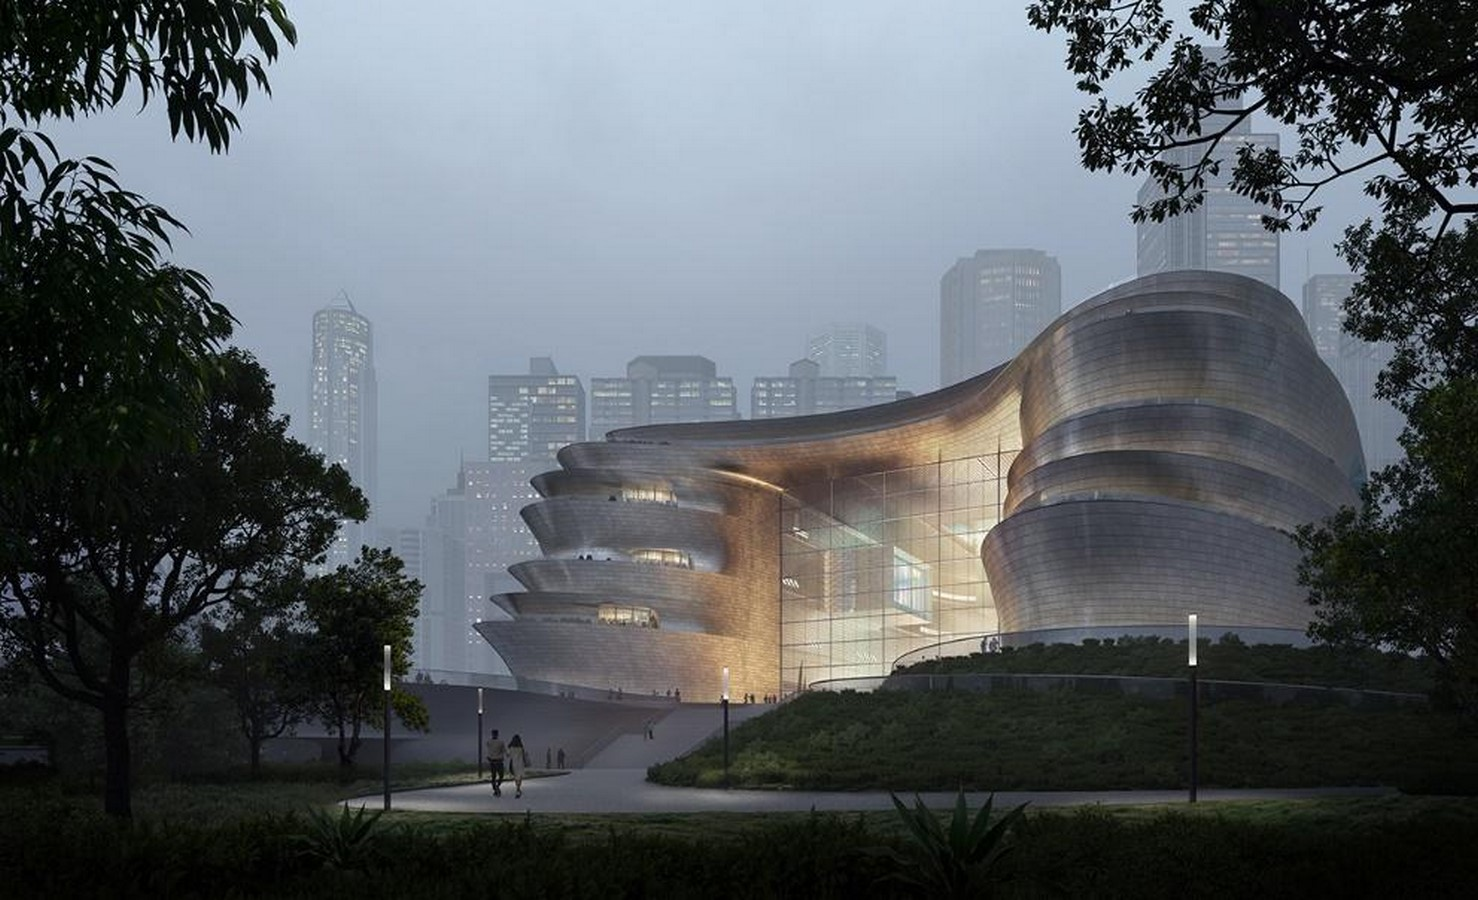 Pebble-shaped science museum for Shenzhen unveiled by Zet1aha Hadid Architects- Sheet1